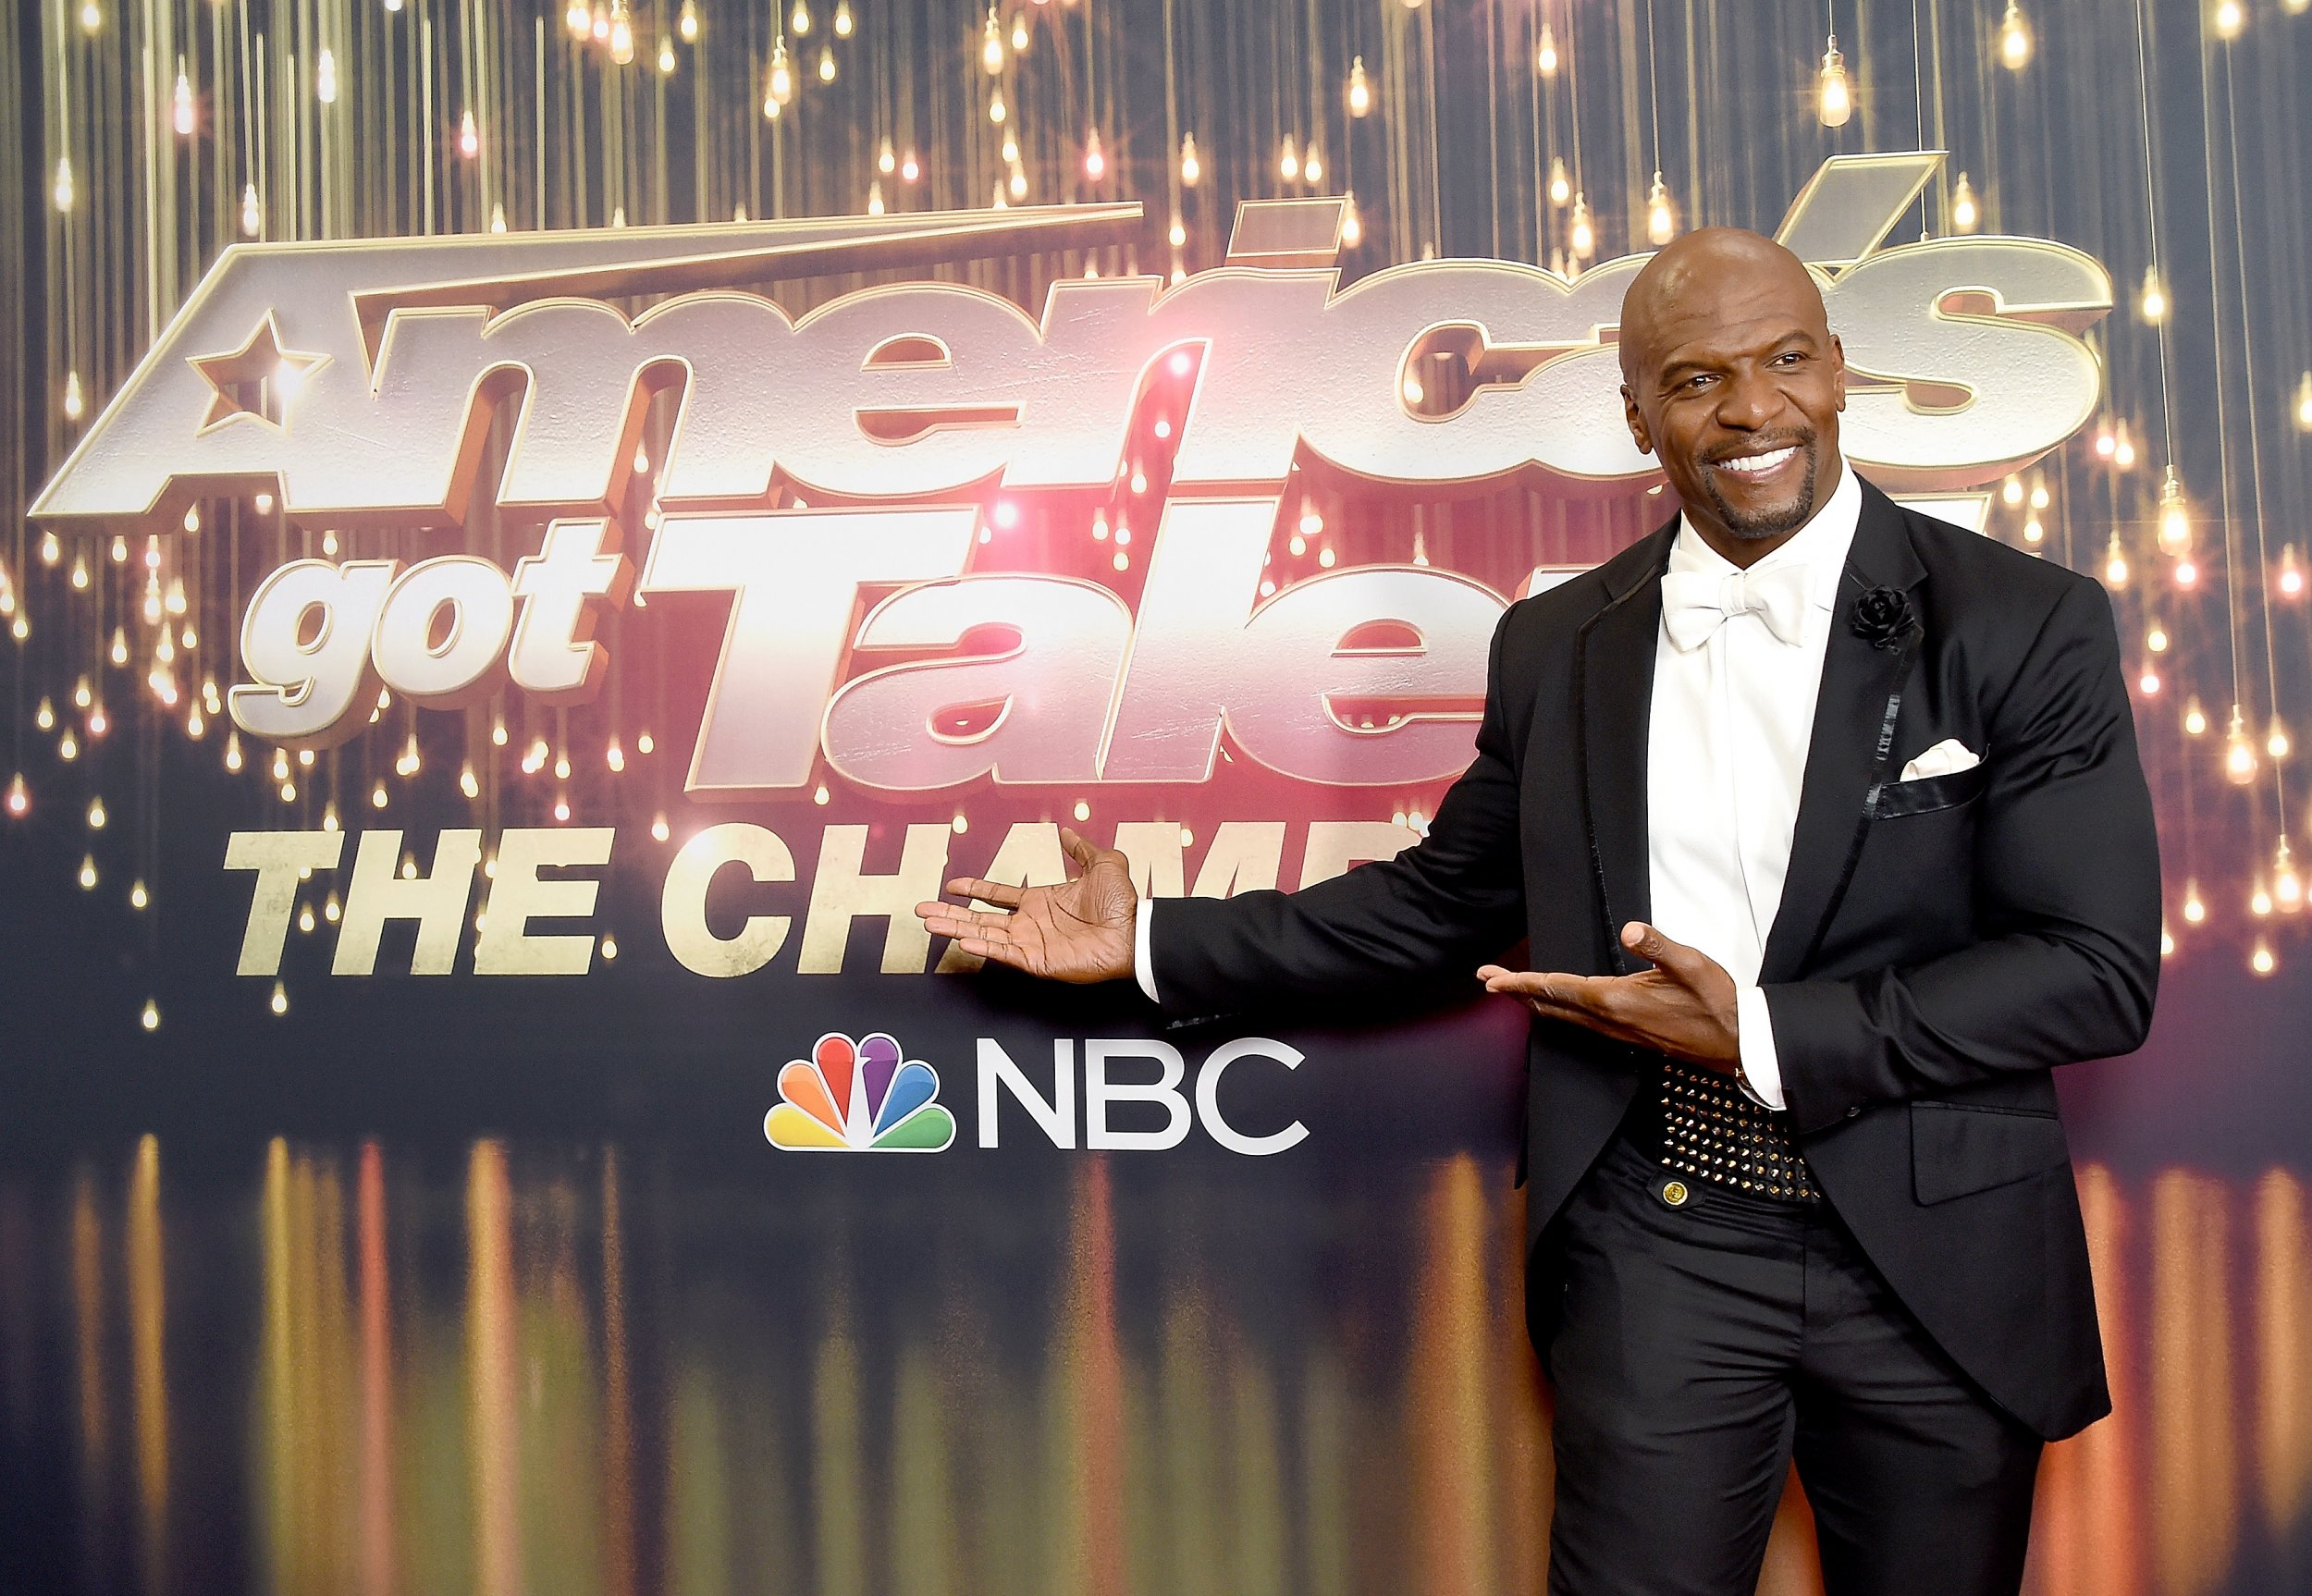 AGT The Champions: The Finals